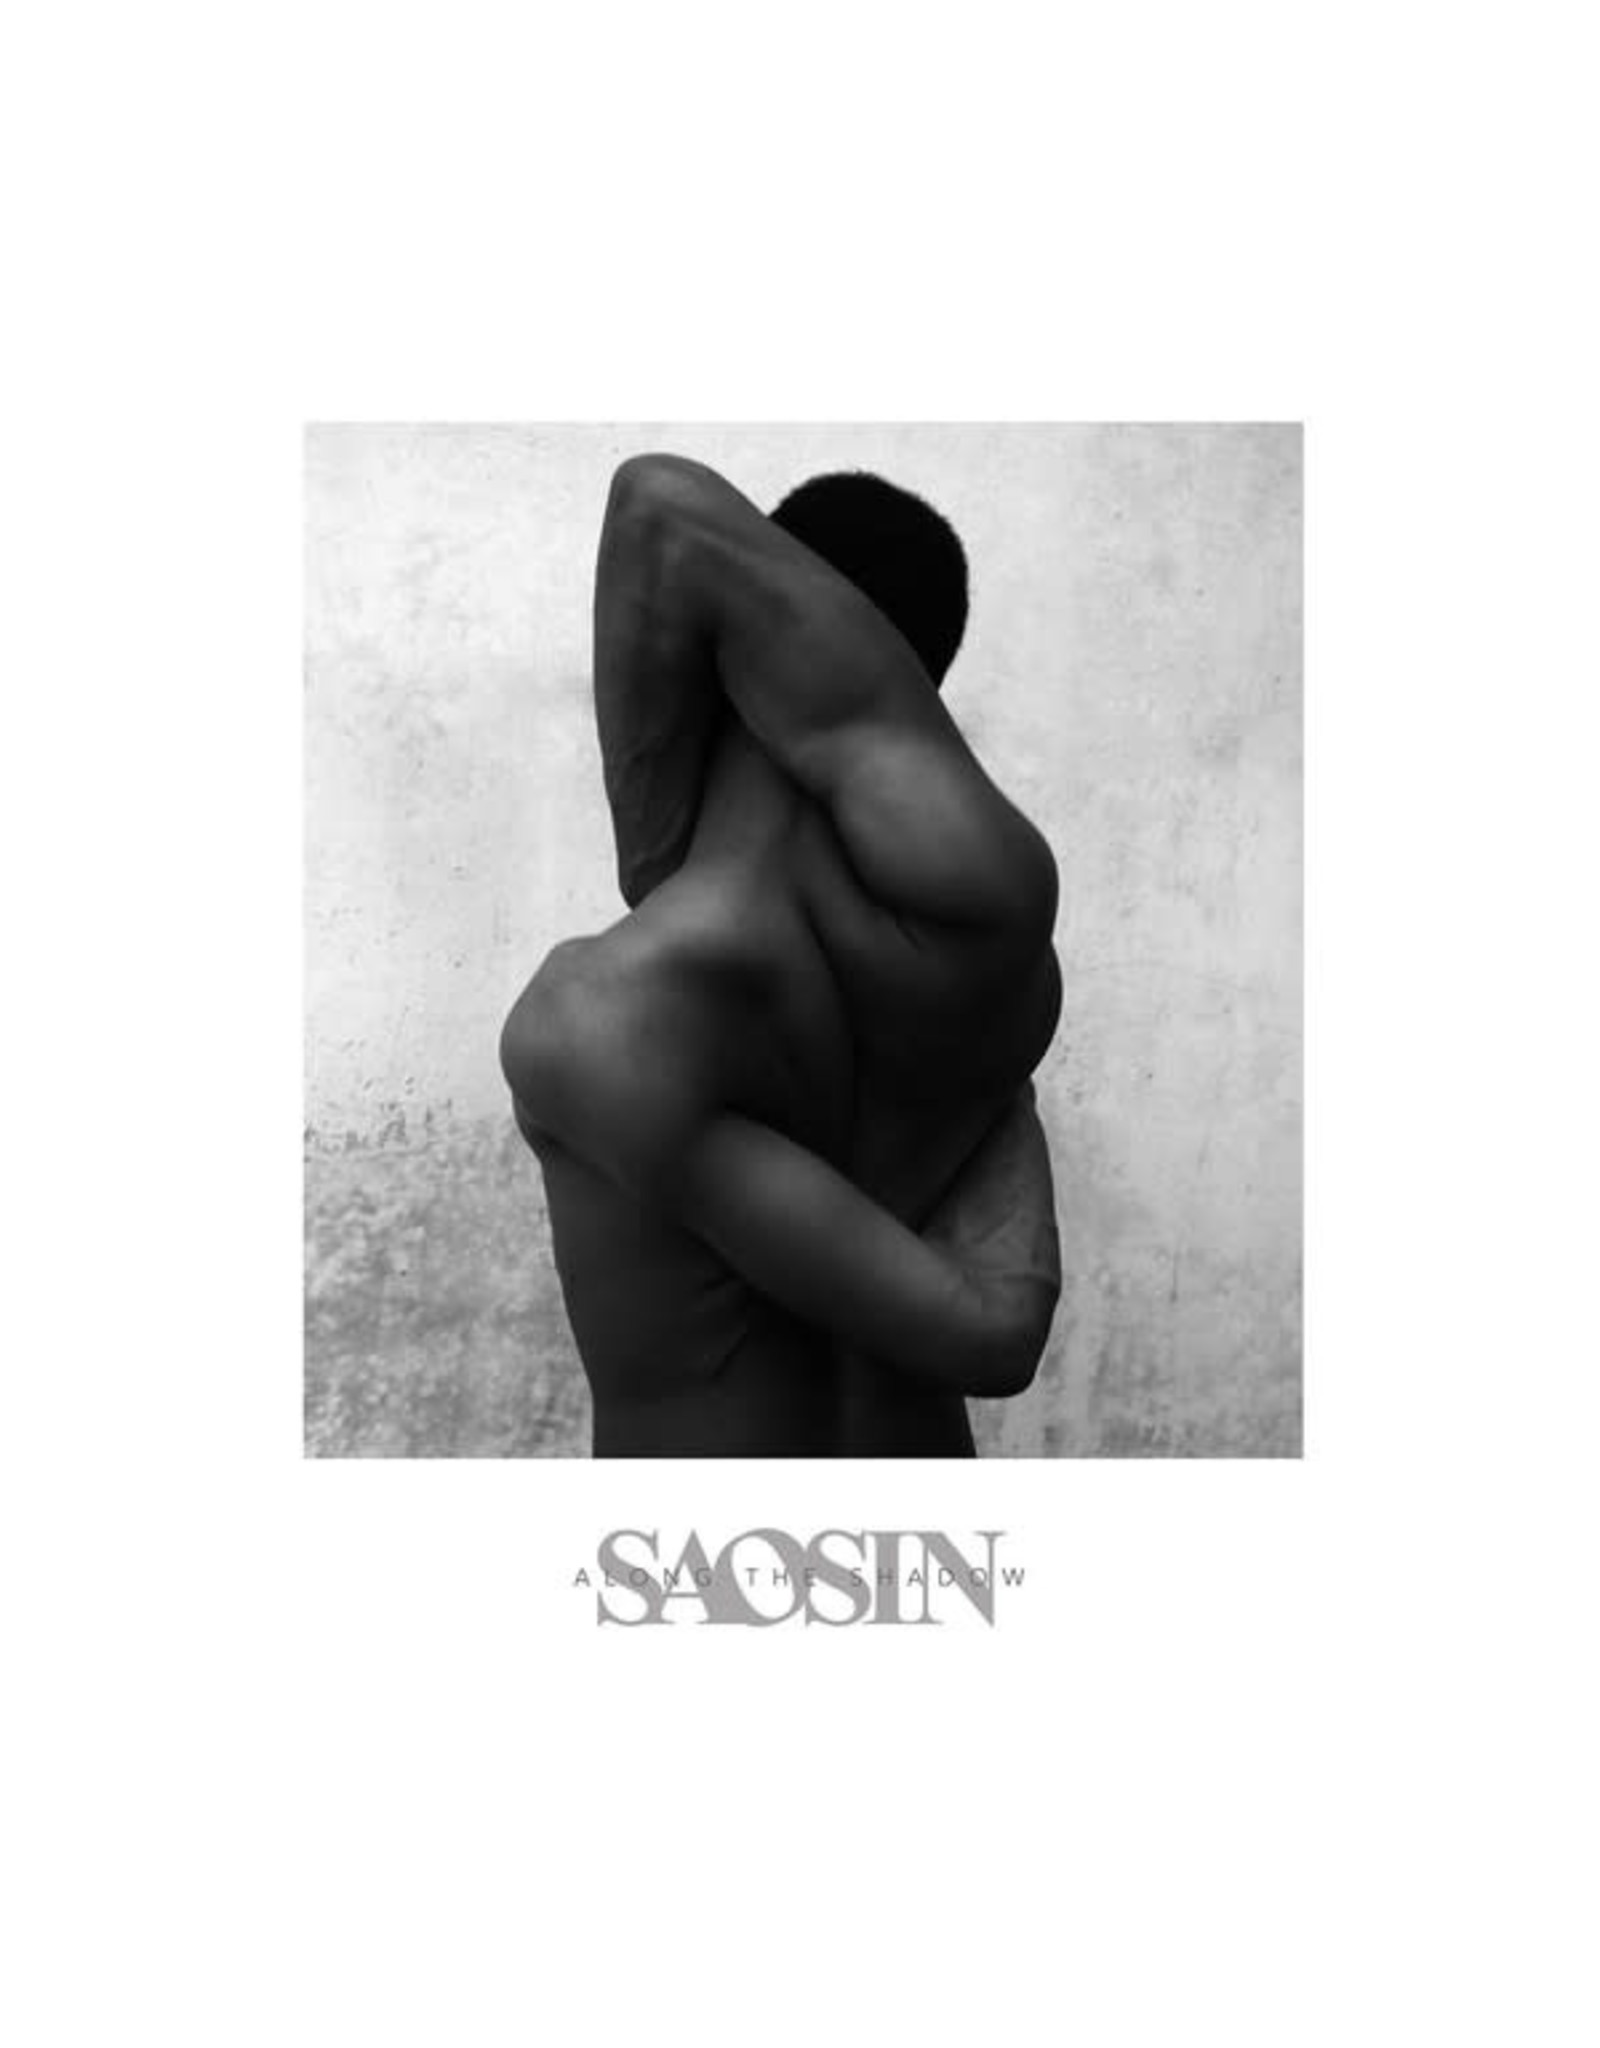 Saosin - Along the Shadow CD